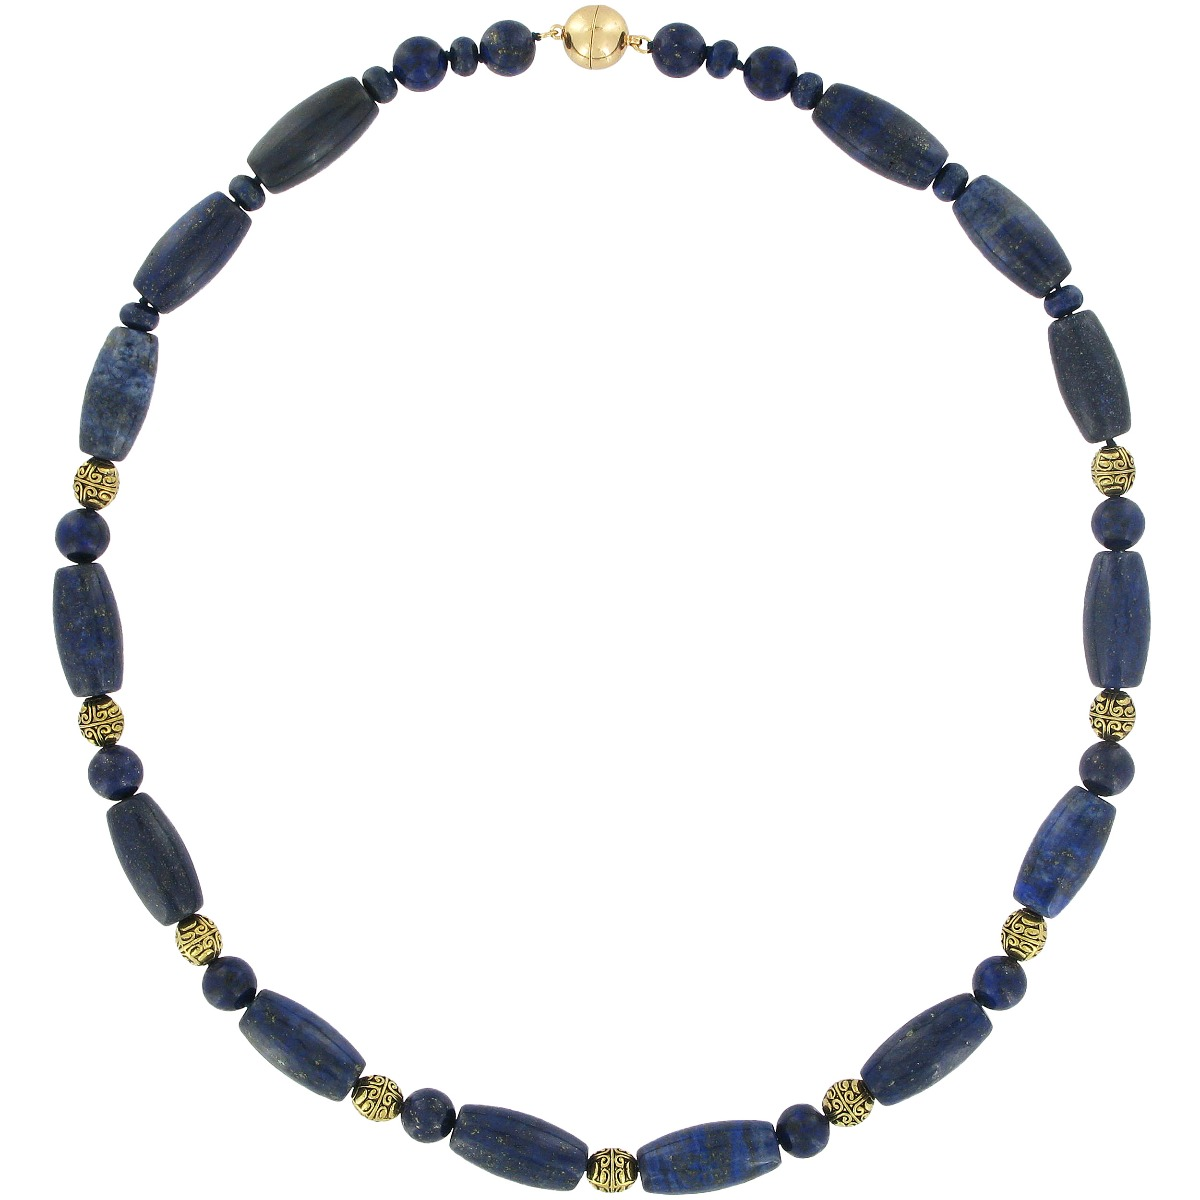 Lapis lazuli and brass beads necklace